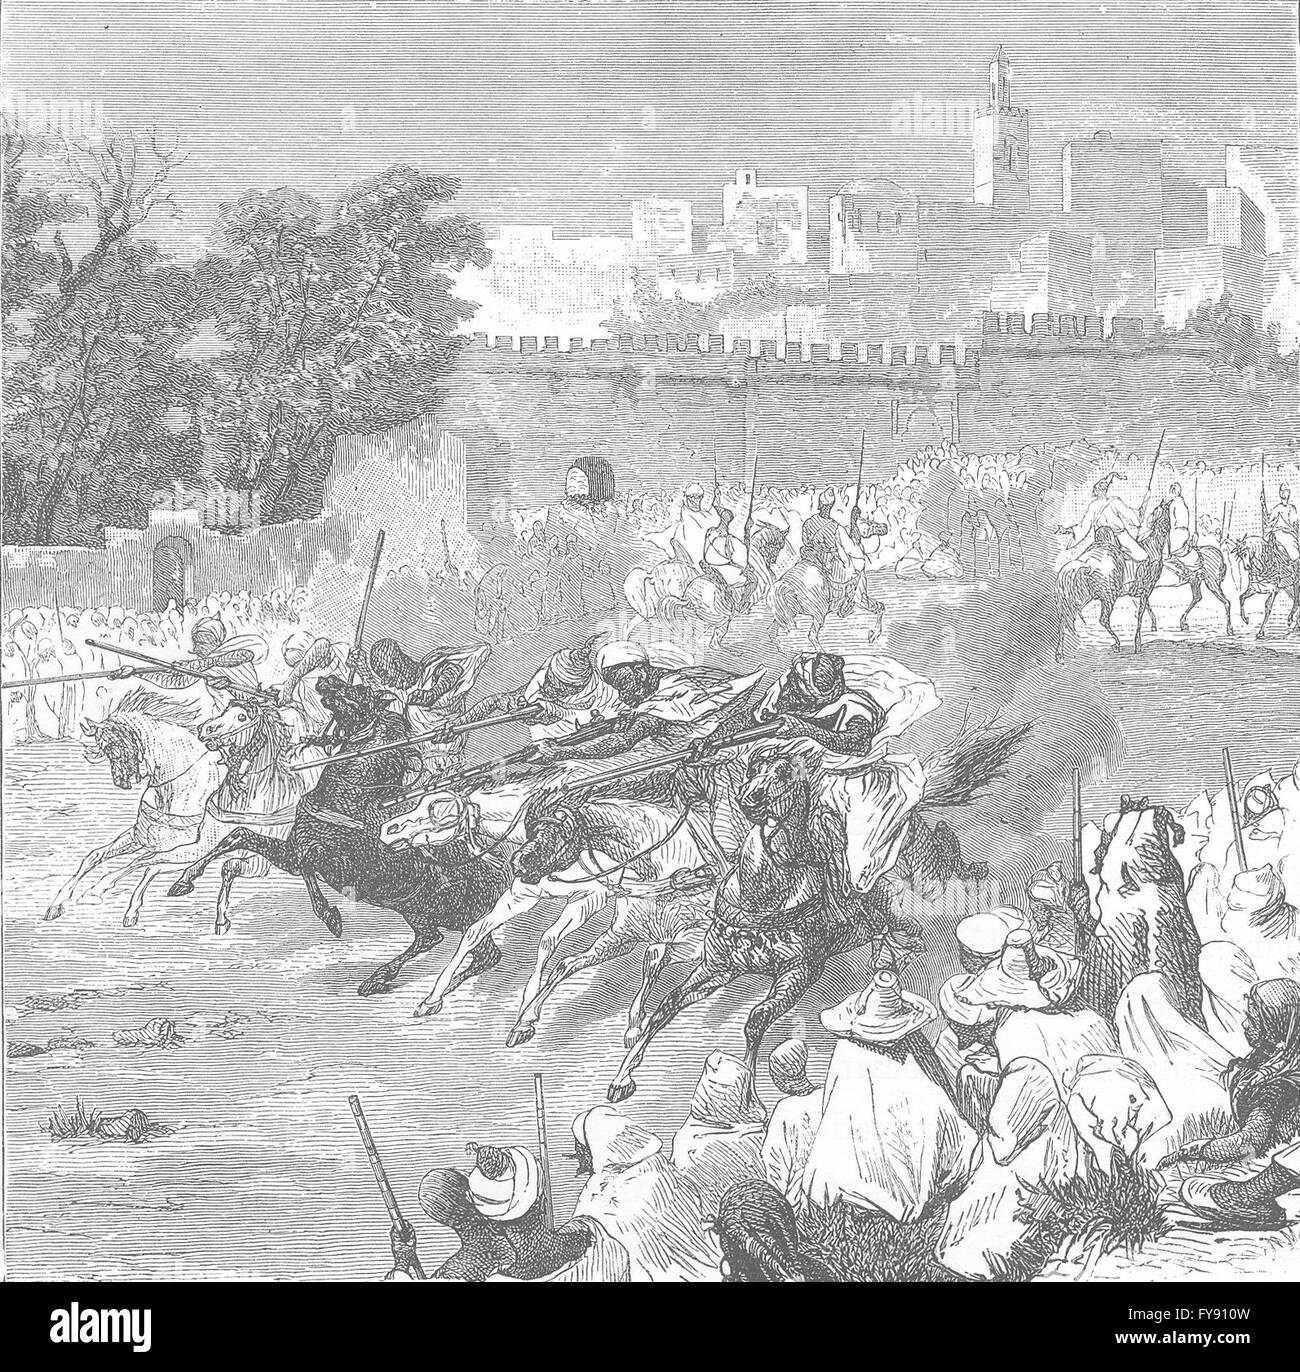 MOROCCO: Charge of horsemen, fete Mohammed, antique print 1882 - Stock Image